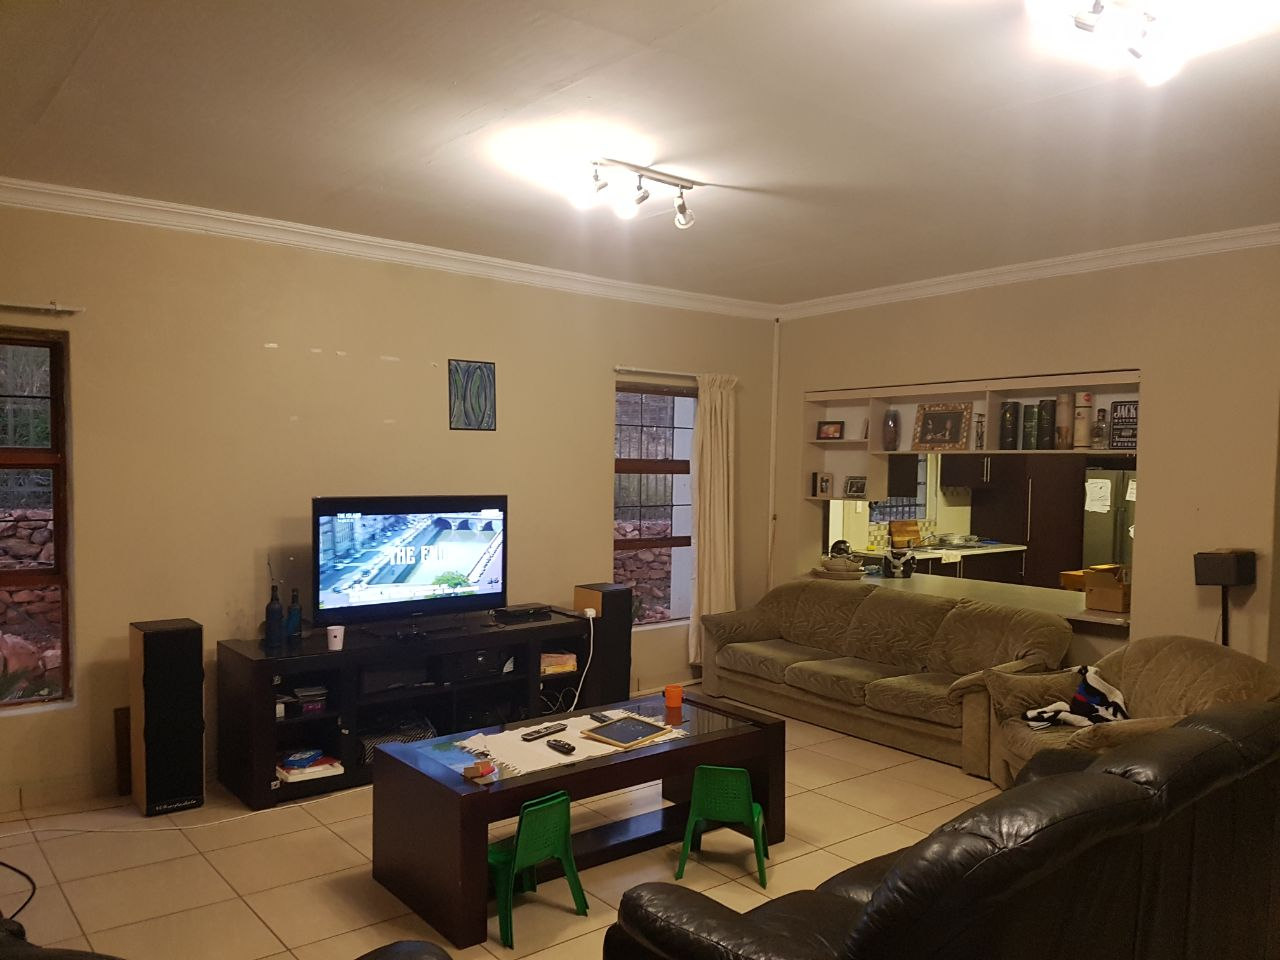 3 Bedroom House for sale in Mountain View ENT0040118 : photo#4